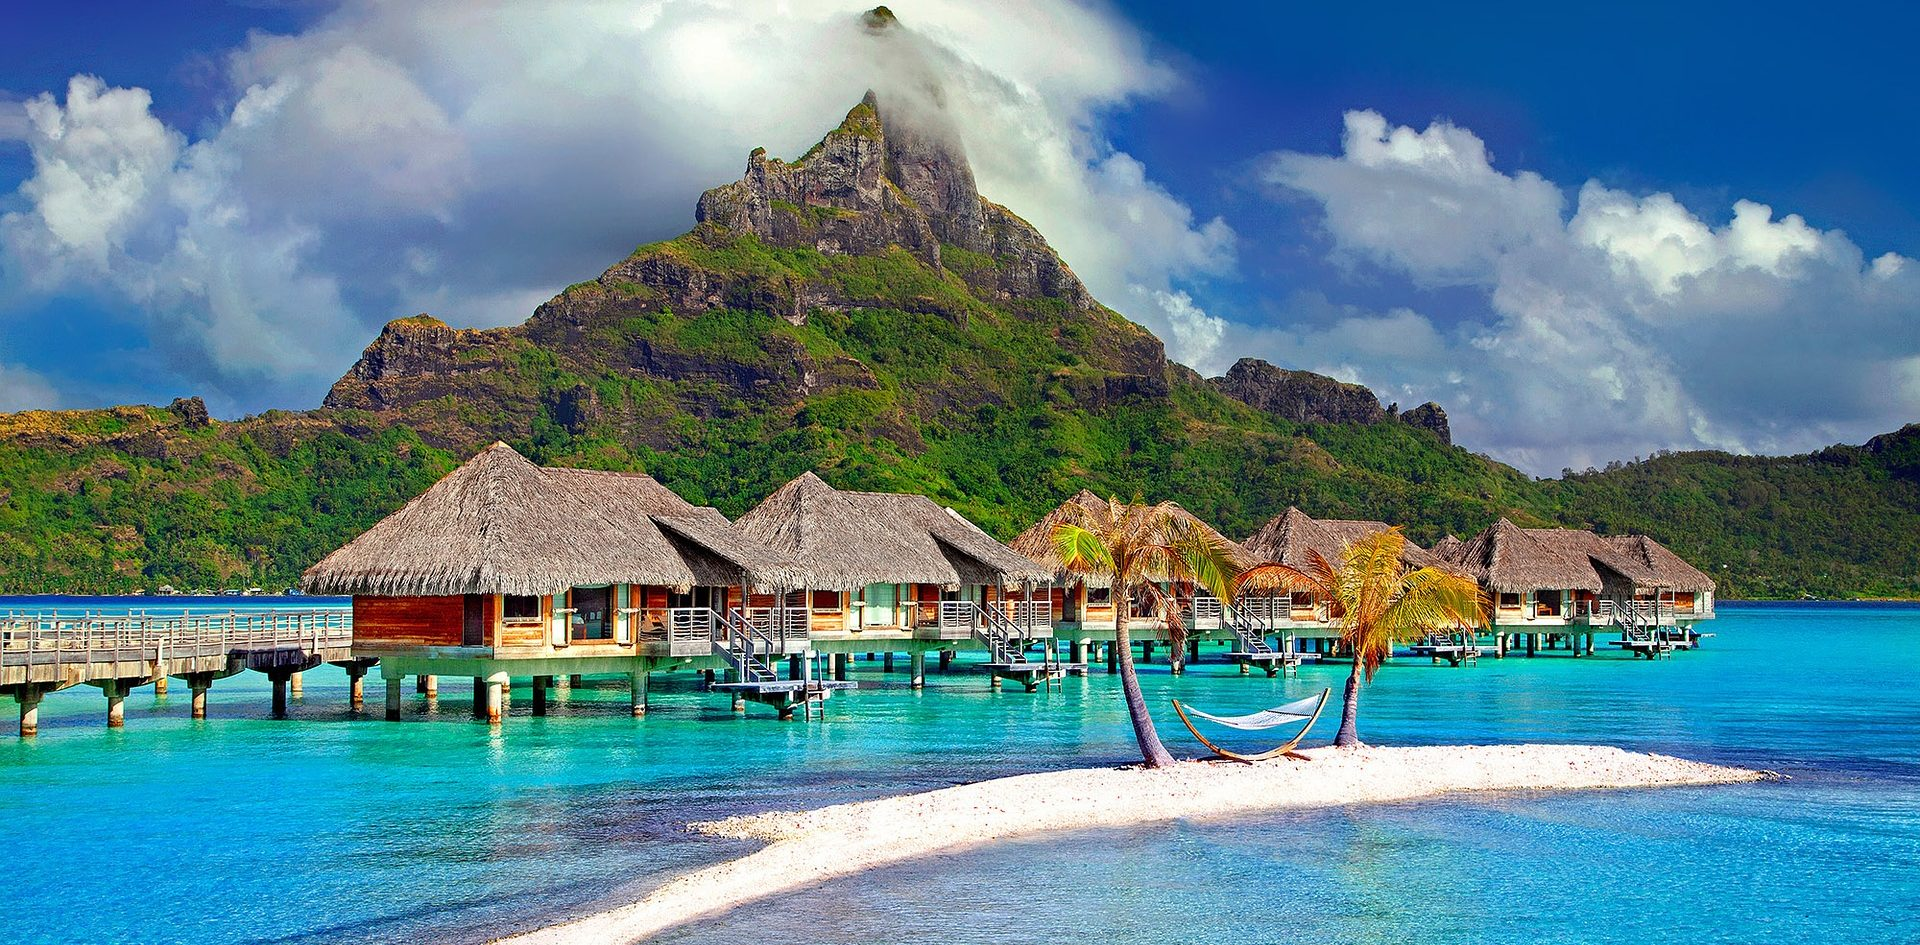 holidays to South Pacific, Bora Bora, Australasia